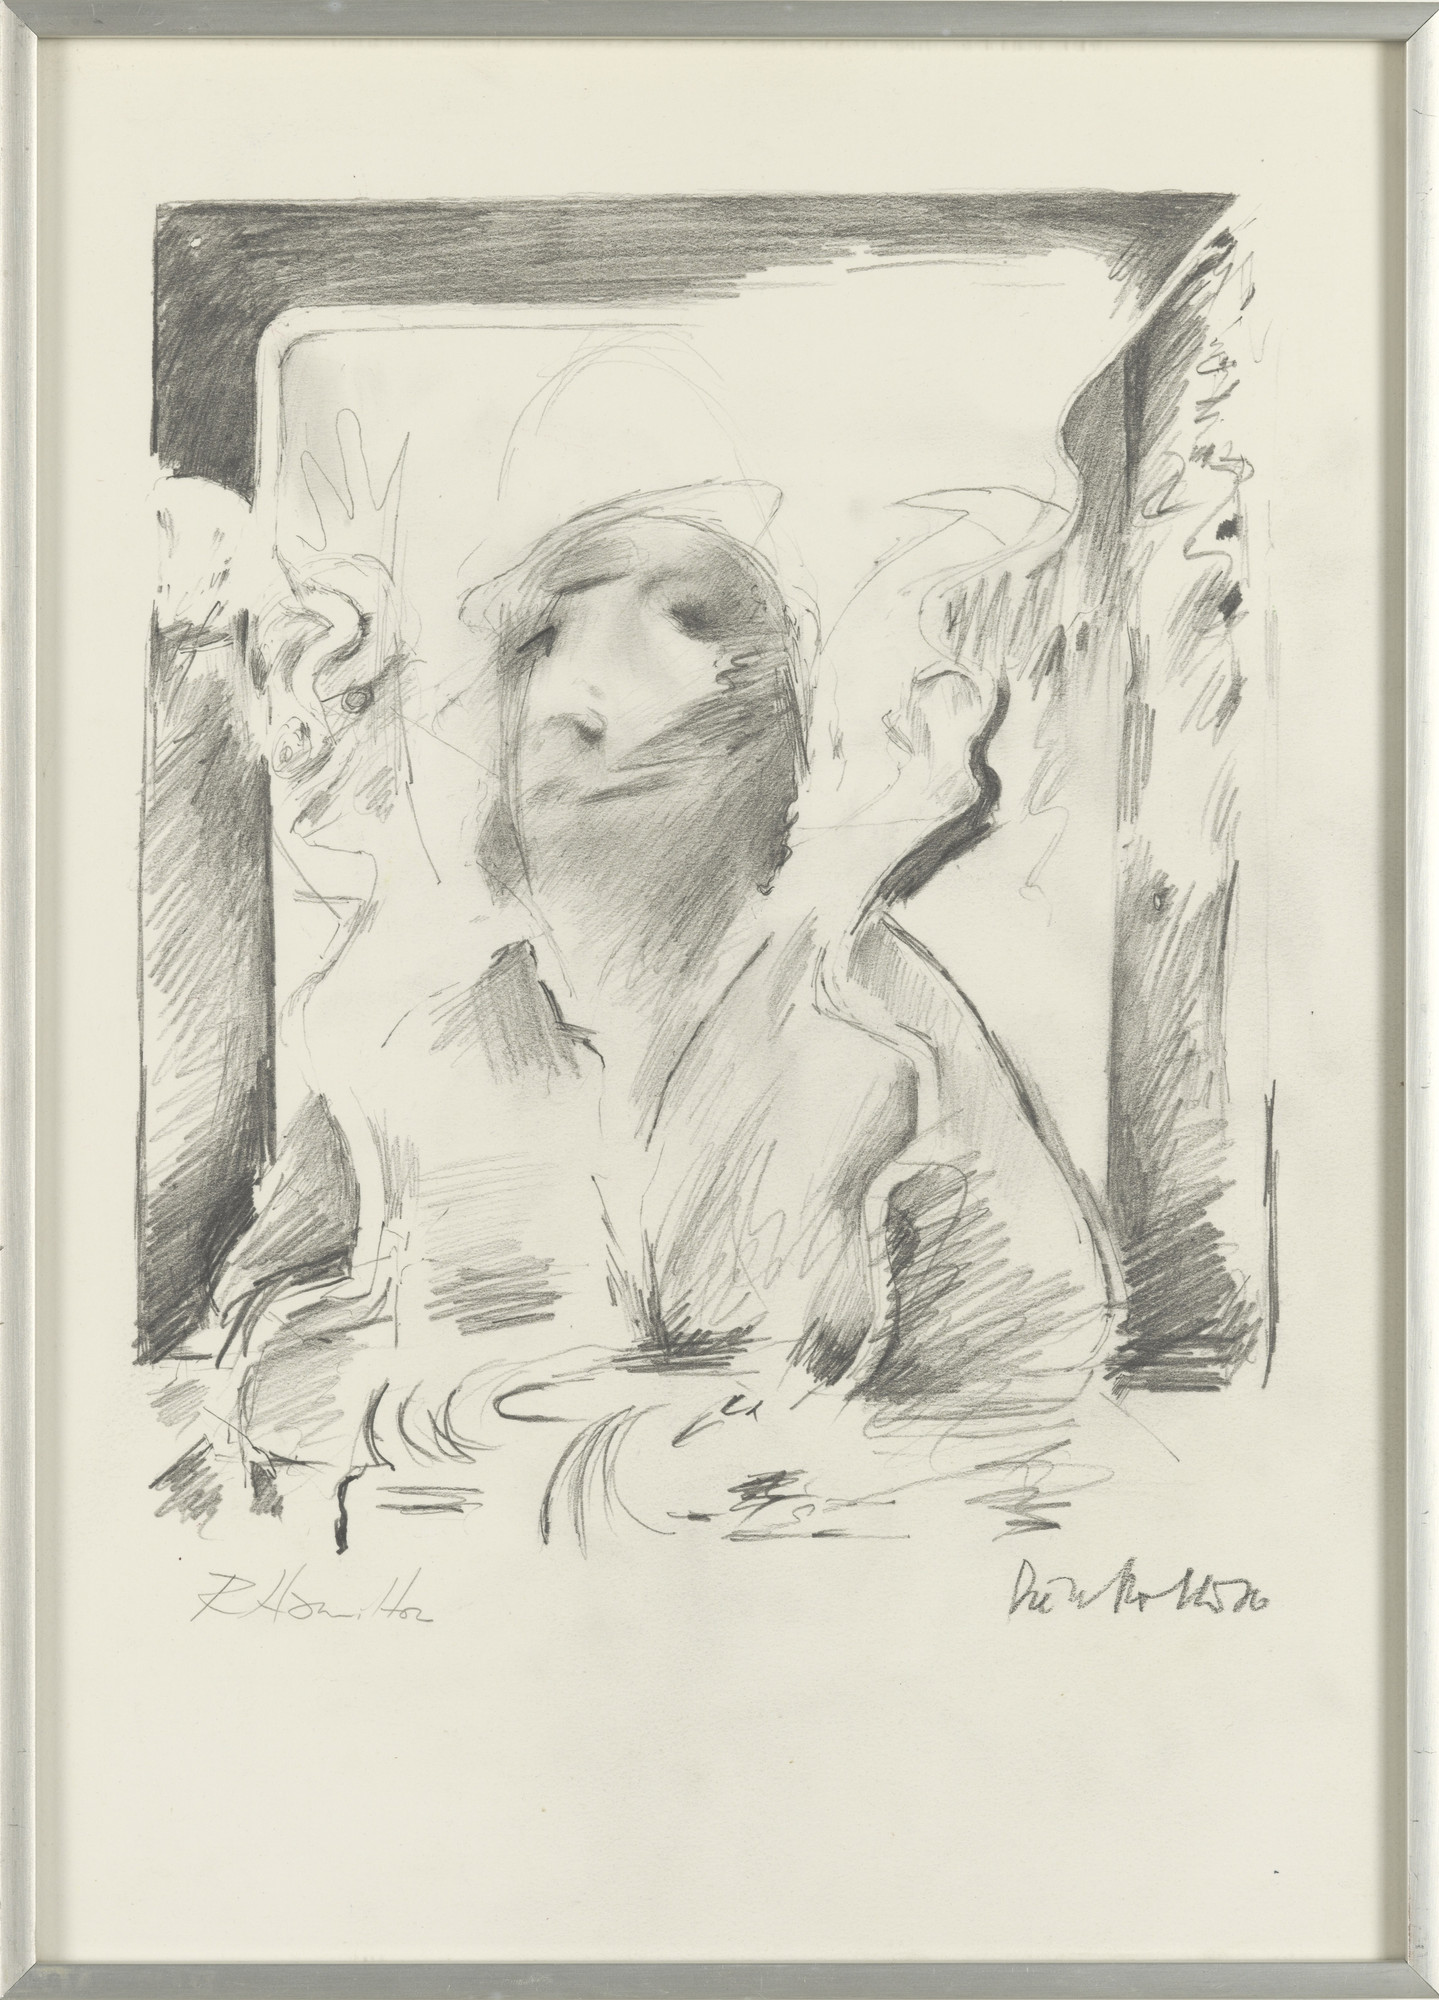 Dieter Roth, Richard Hamilton. Portrait of the Artist by Fr. B. by D. R. by R. H.. 1976